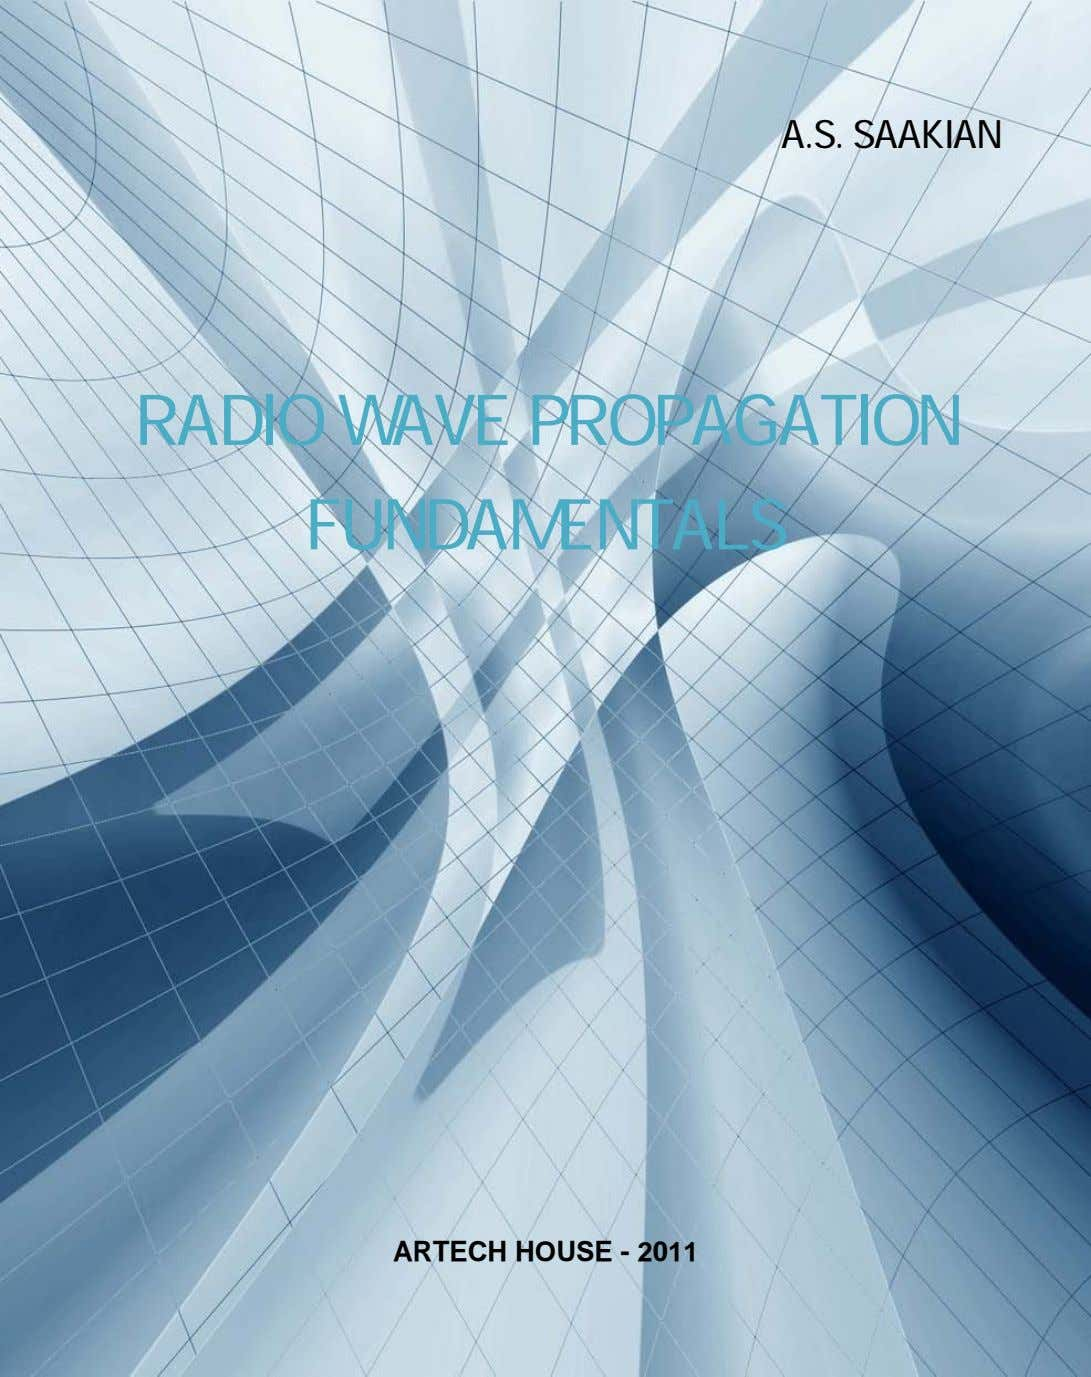 A.S. SAAKIAN RADIO WAVE PROPAGATION FUNDAMENTALS ARTECH HOUSE - 2011